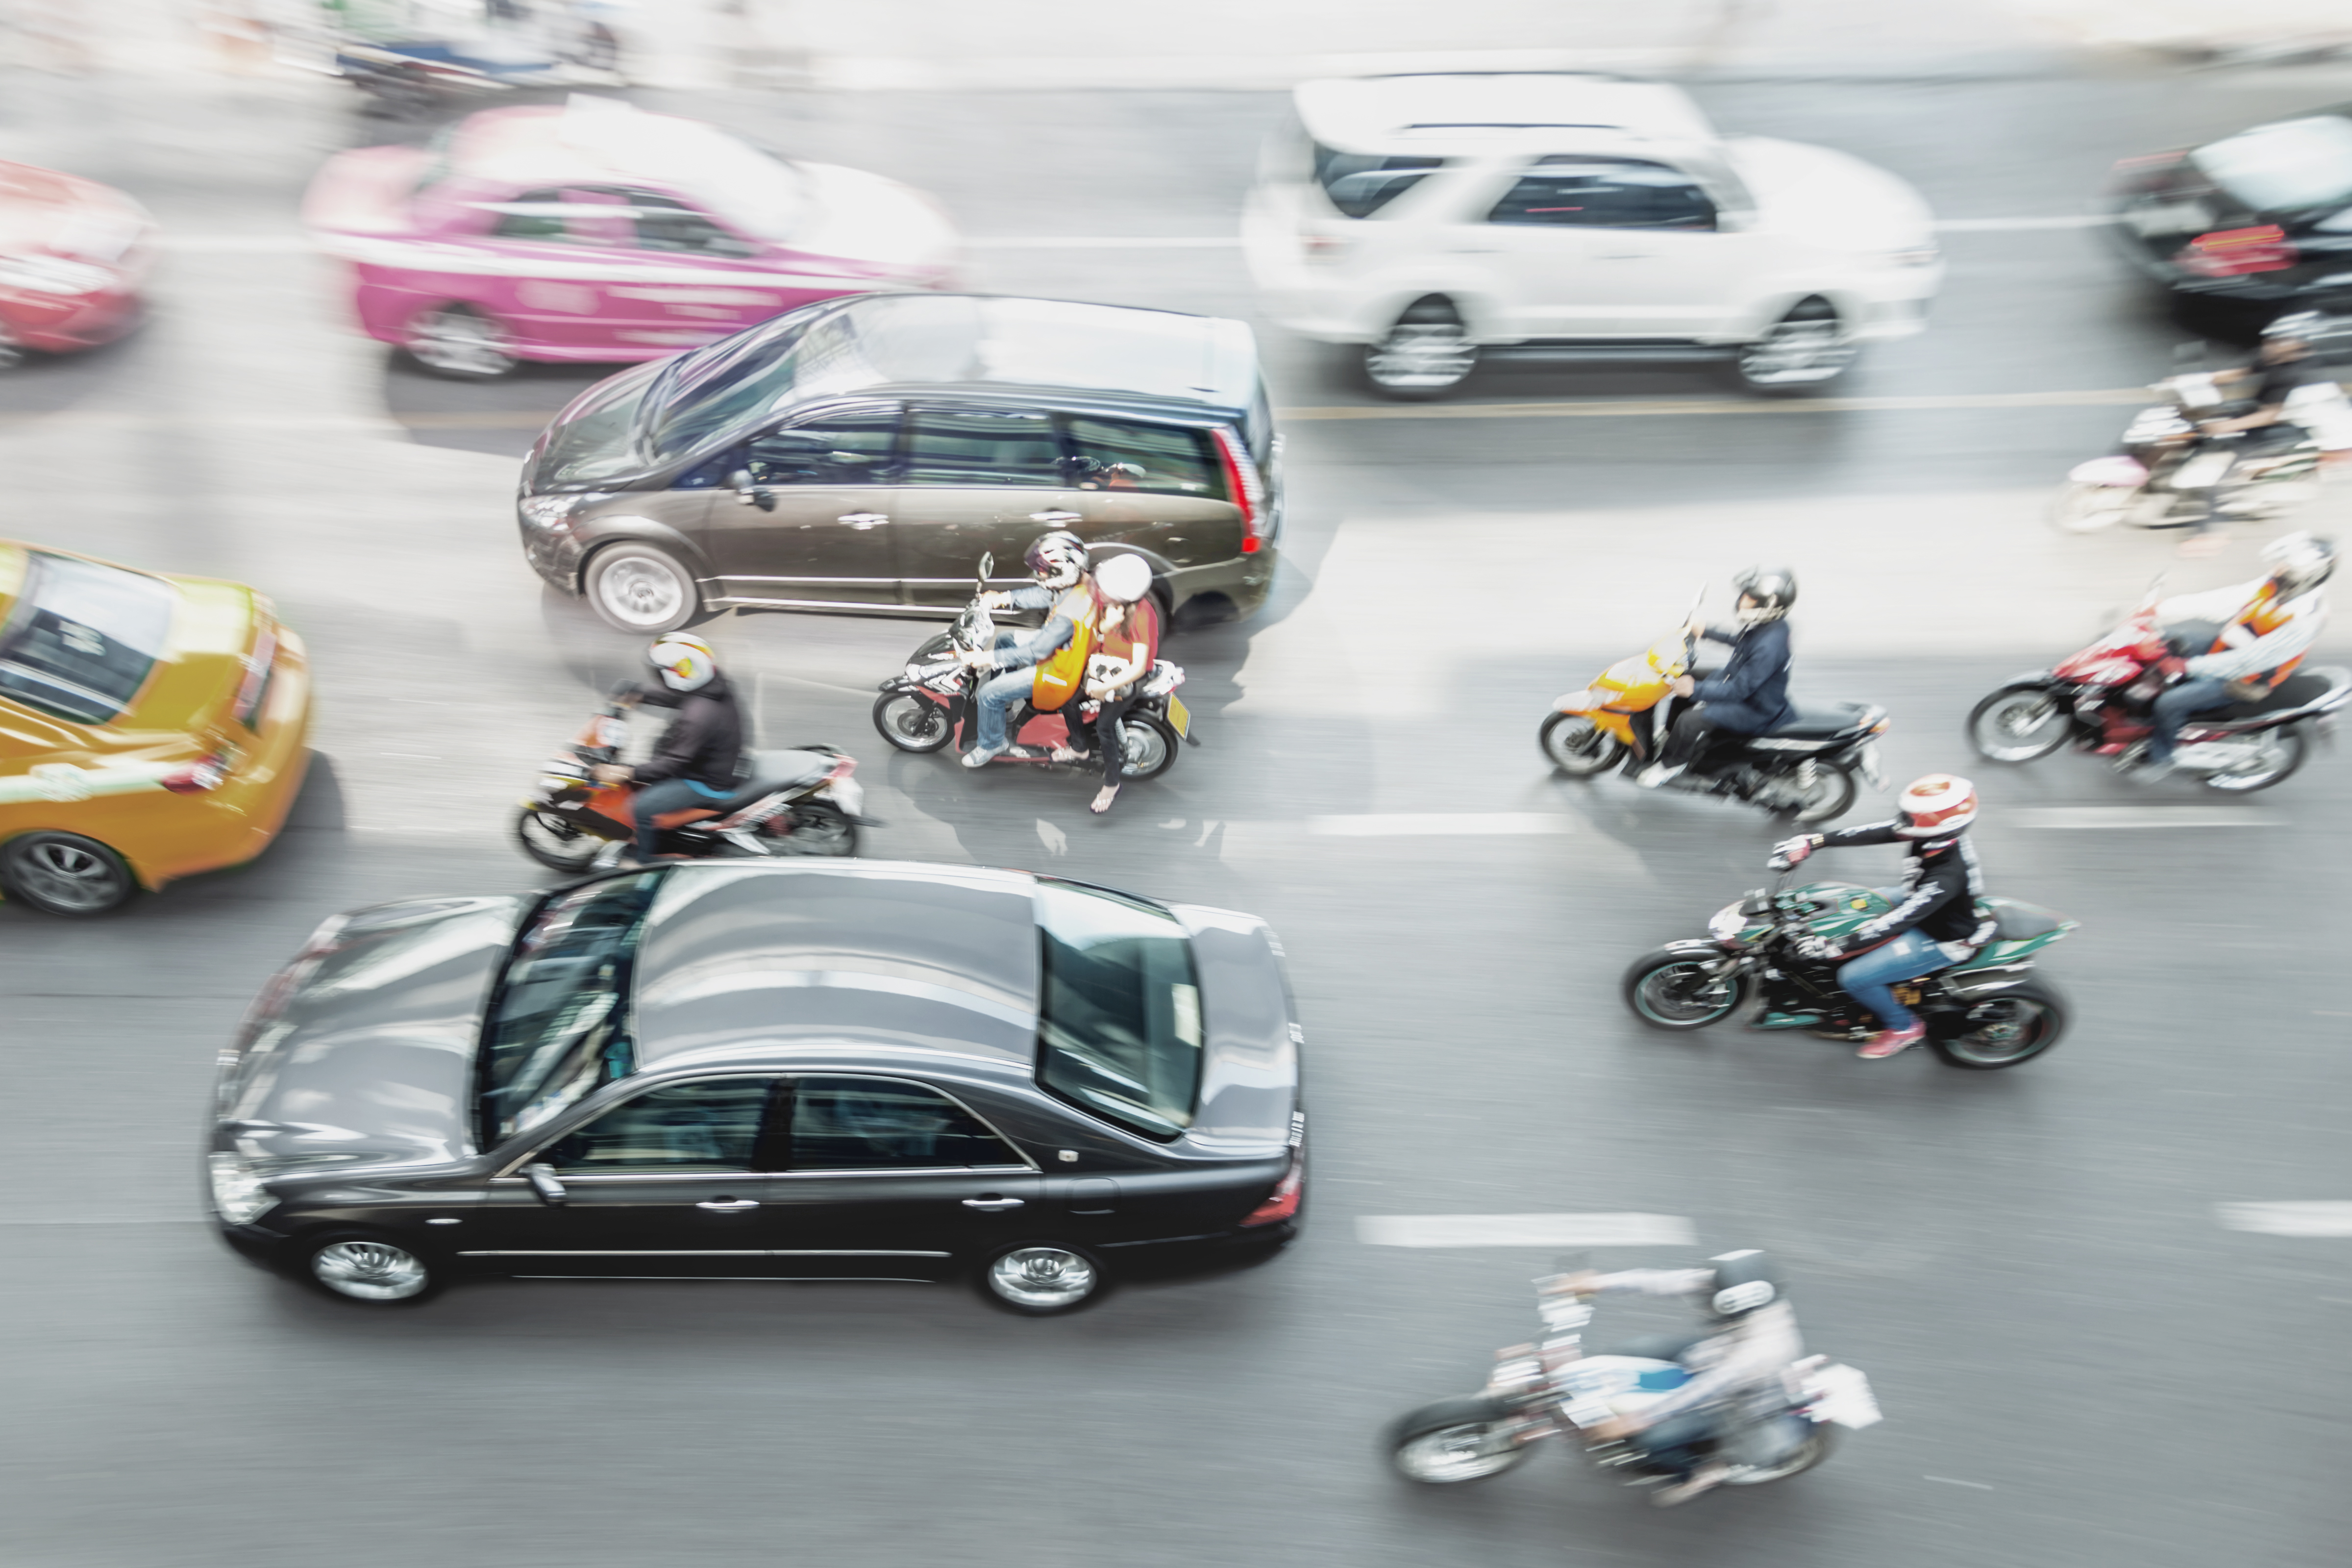 Motorcycles in urban traffic